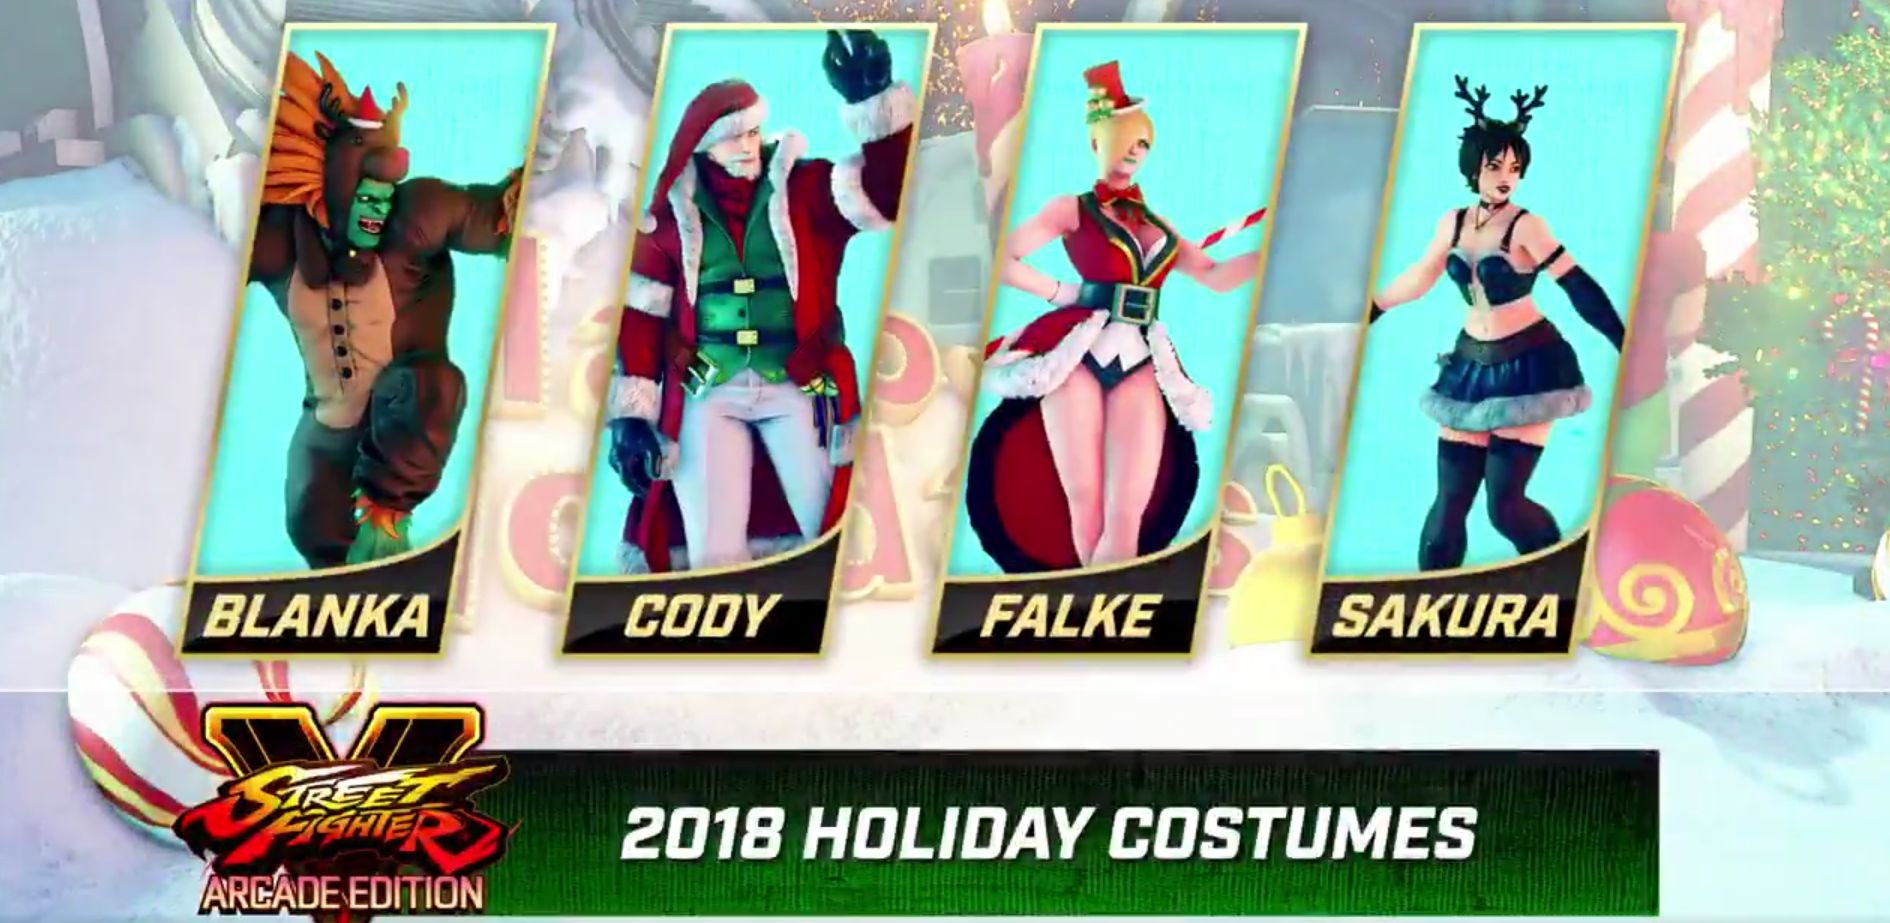 Street Fighter 5: Arcade Edition Holiday costumes are coming